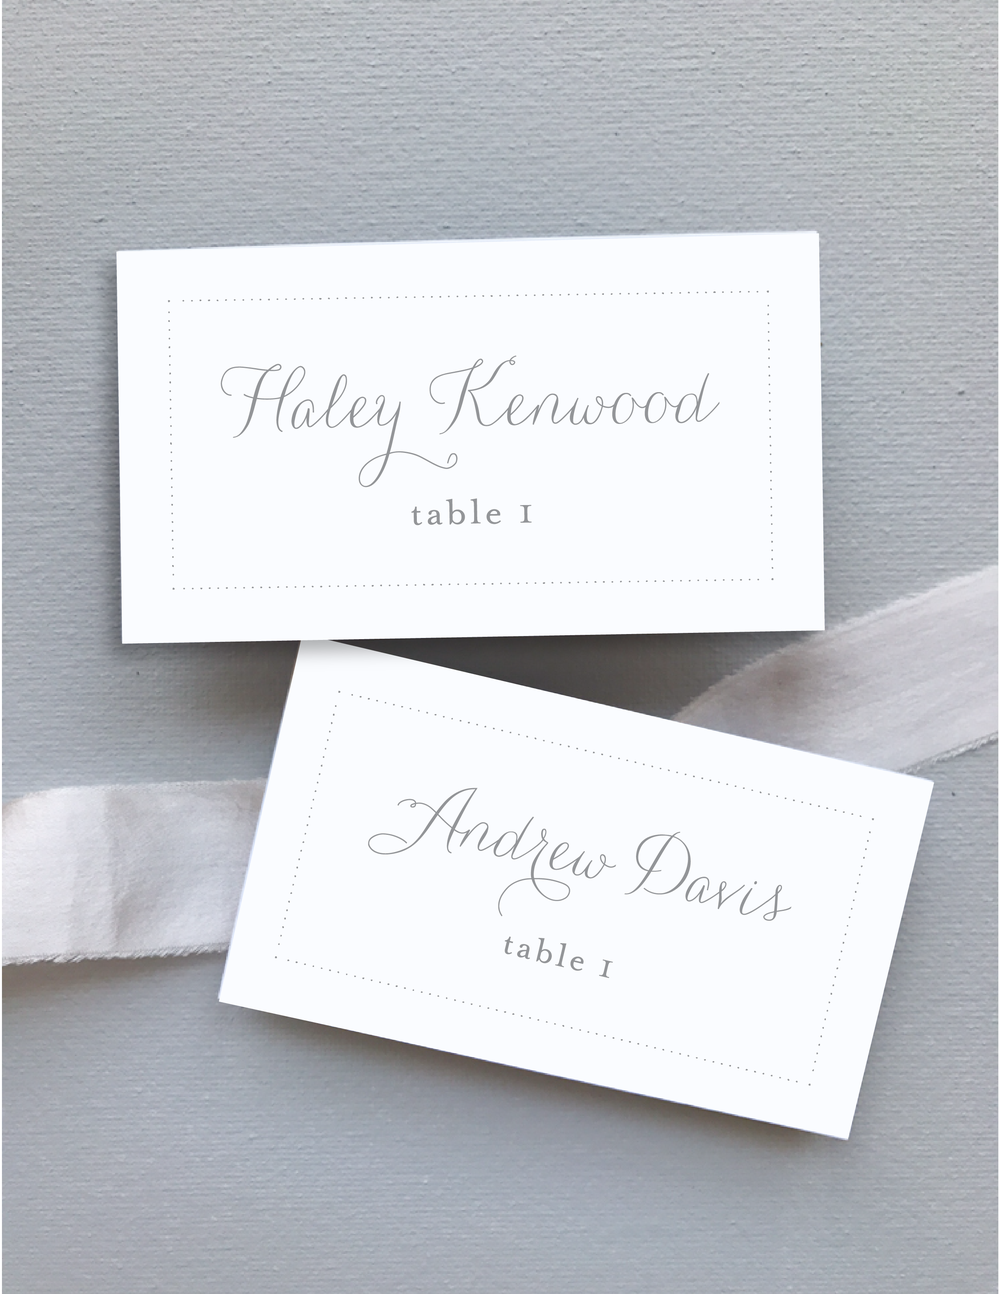 1137 Place Cards-01.png